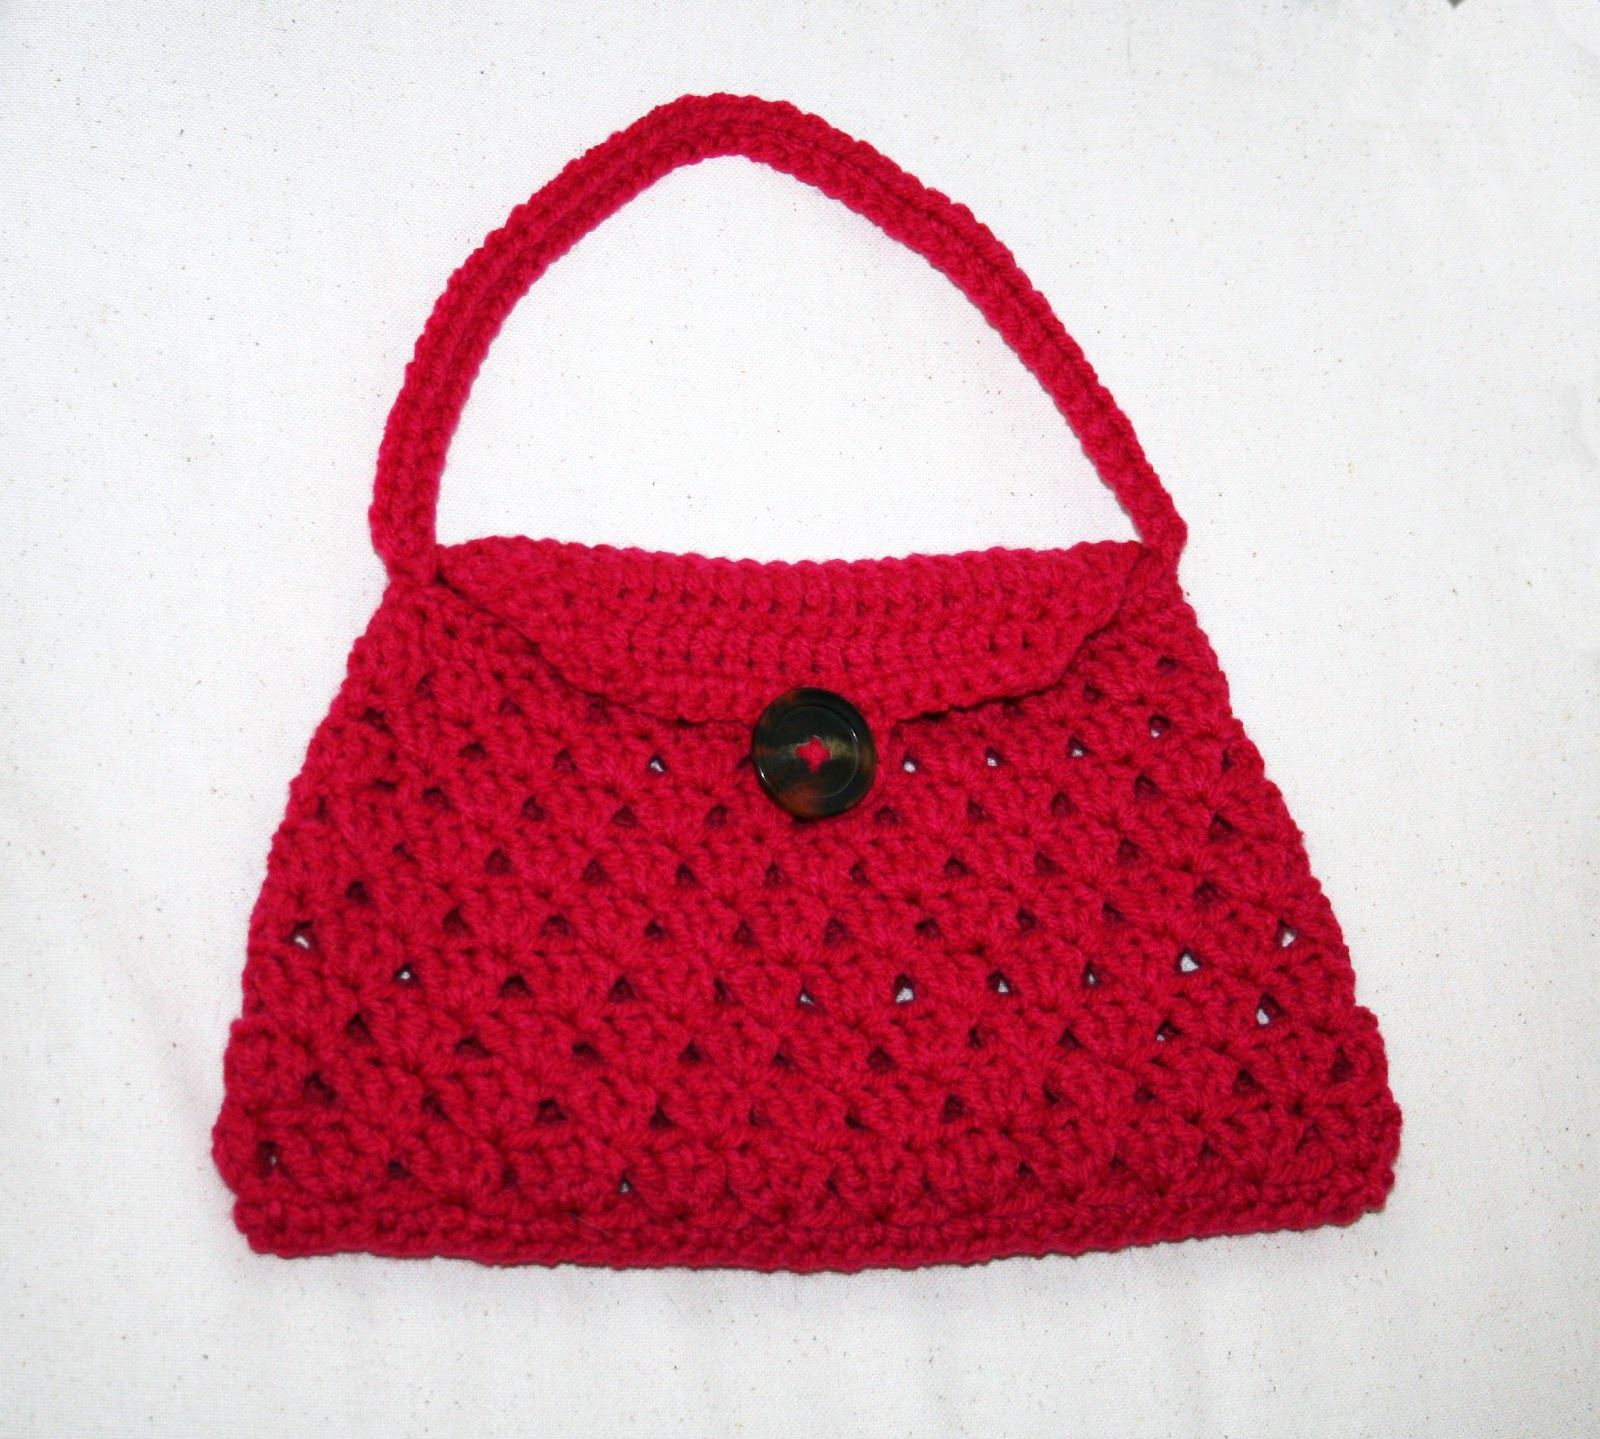 Purse Sewing Patterns at specialtysports.ga - Free Crafts Network Free Crafts projects! Your guide for all types of crafts. Holiday crafts, Kids crafts, crochet, knitting, dolls, rubber stamps and much more! 20+ craft categories. New free projects added weekly!